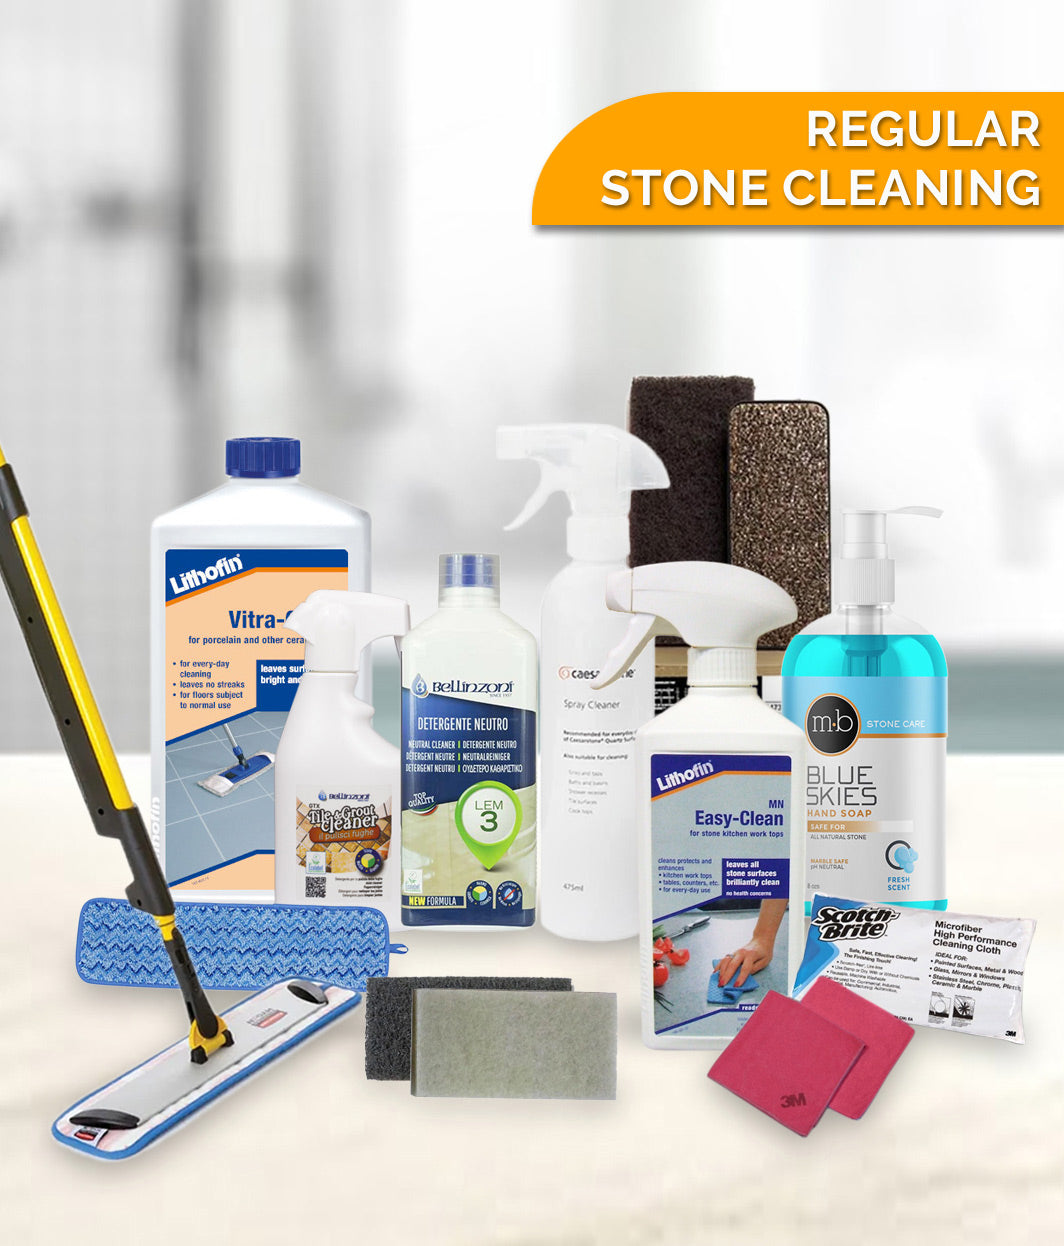 APPROVED REGULAR STONE CLEANING PRODUCTS